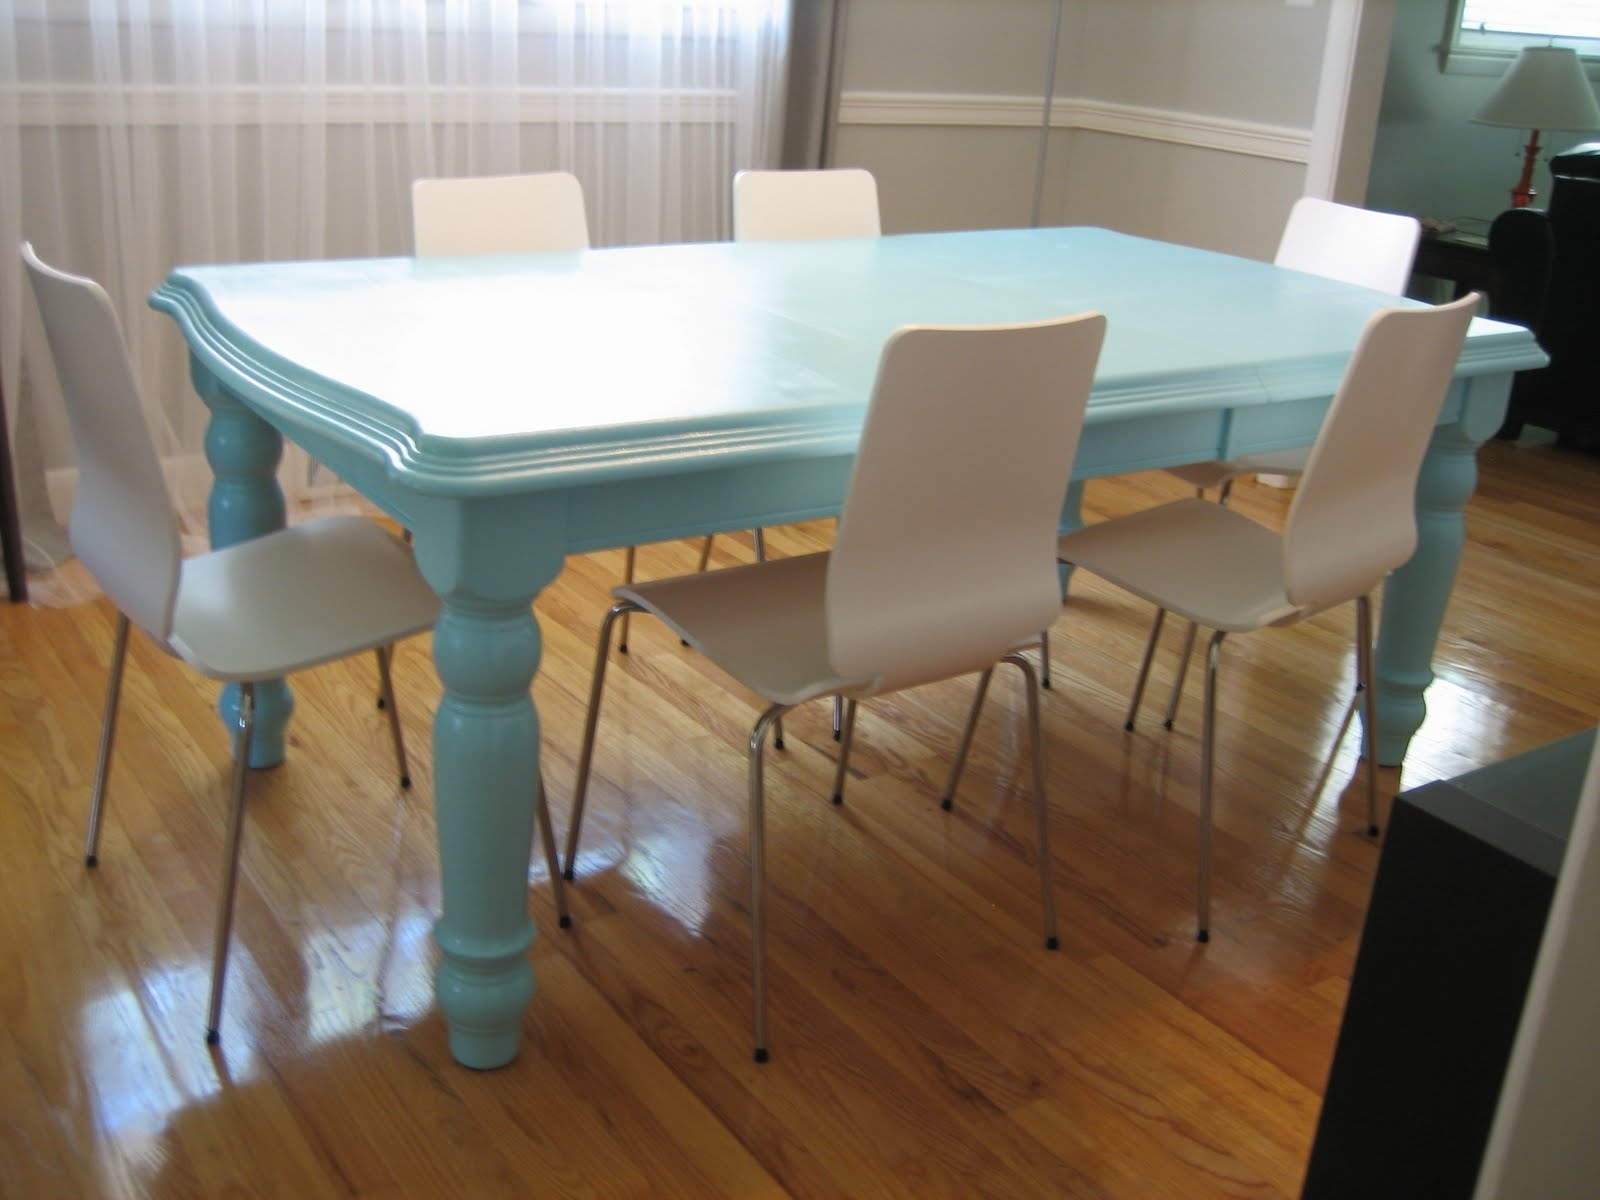 Durham Salad Days: Blue Dining Tabledone & Done Intended For Most Current Blue Dining Tables (View 11 of 25)